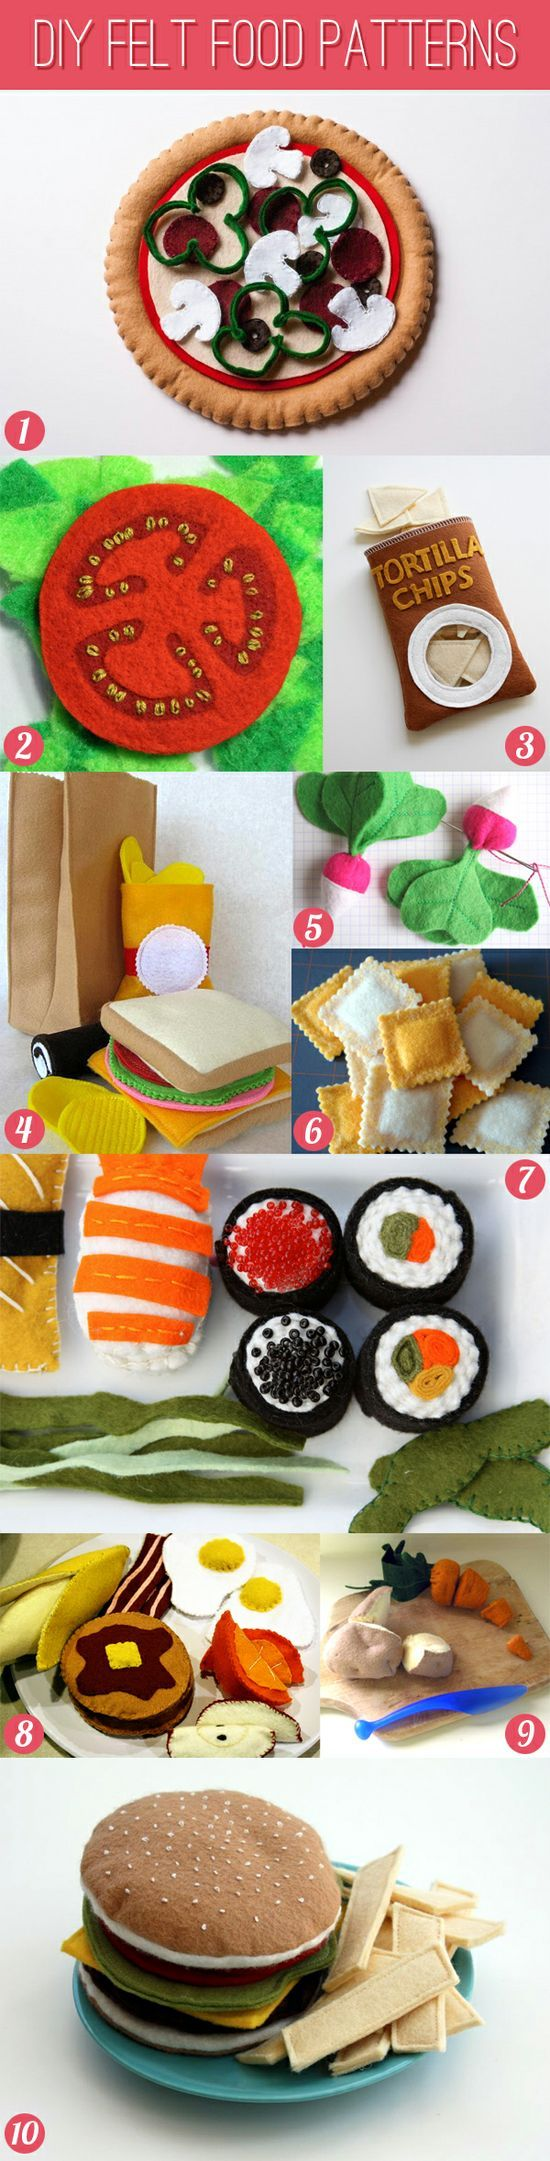 DIY felt food patterns and | http://stuffed-animals.lemoncoin.org